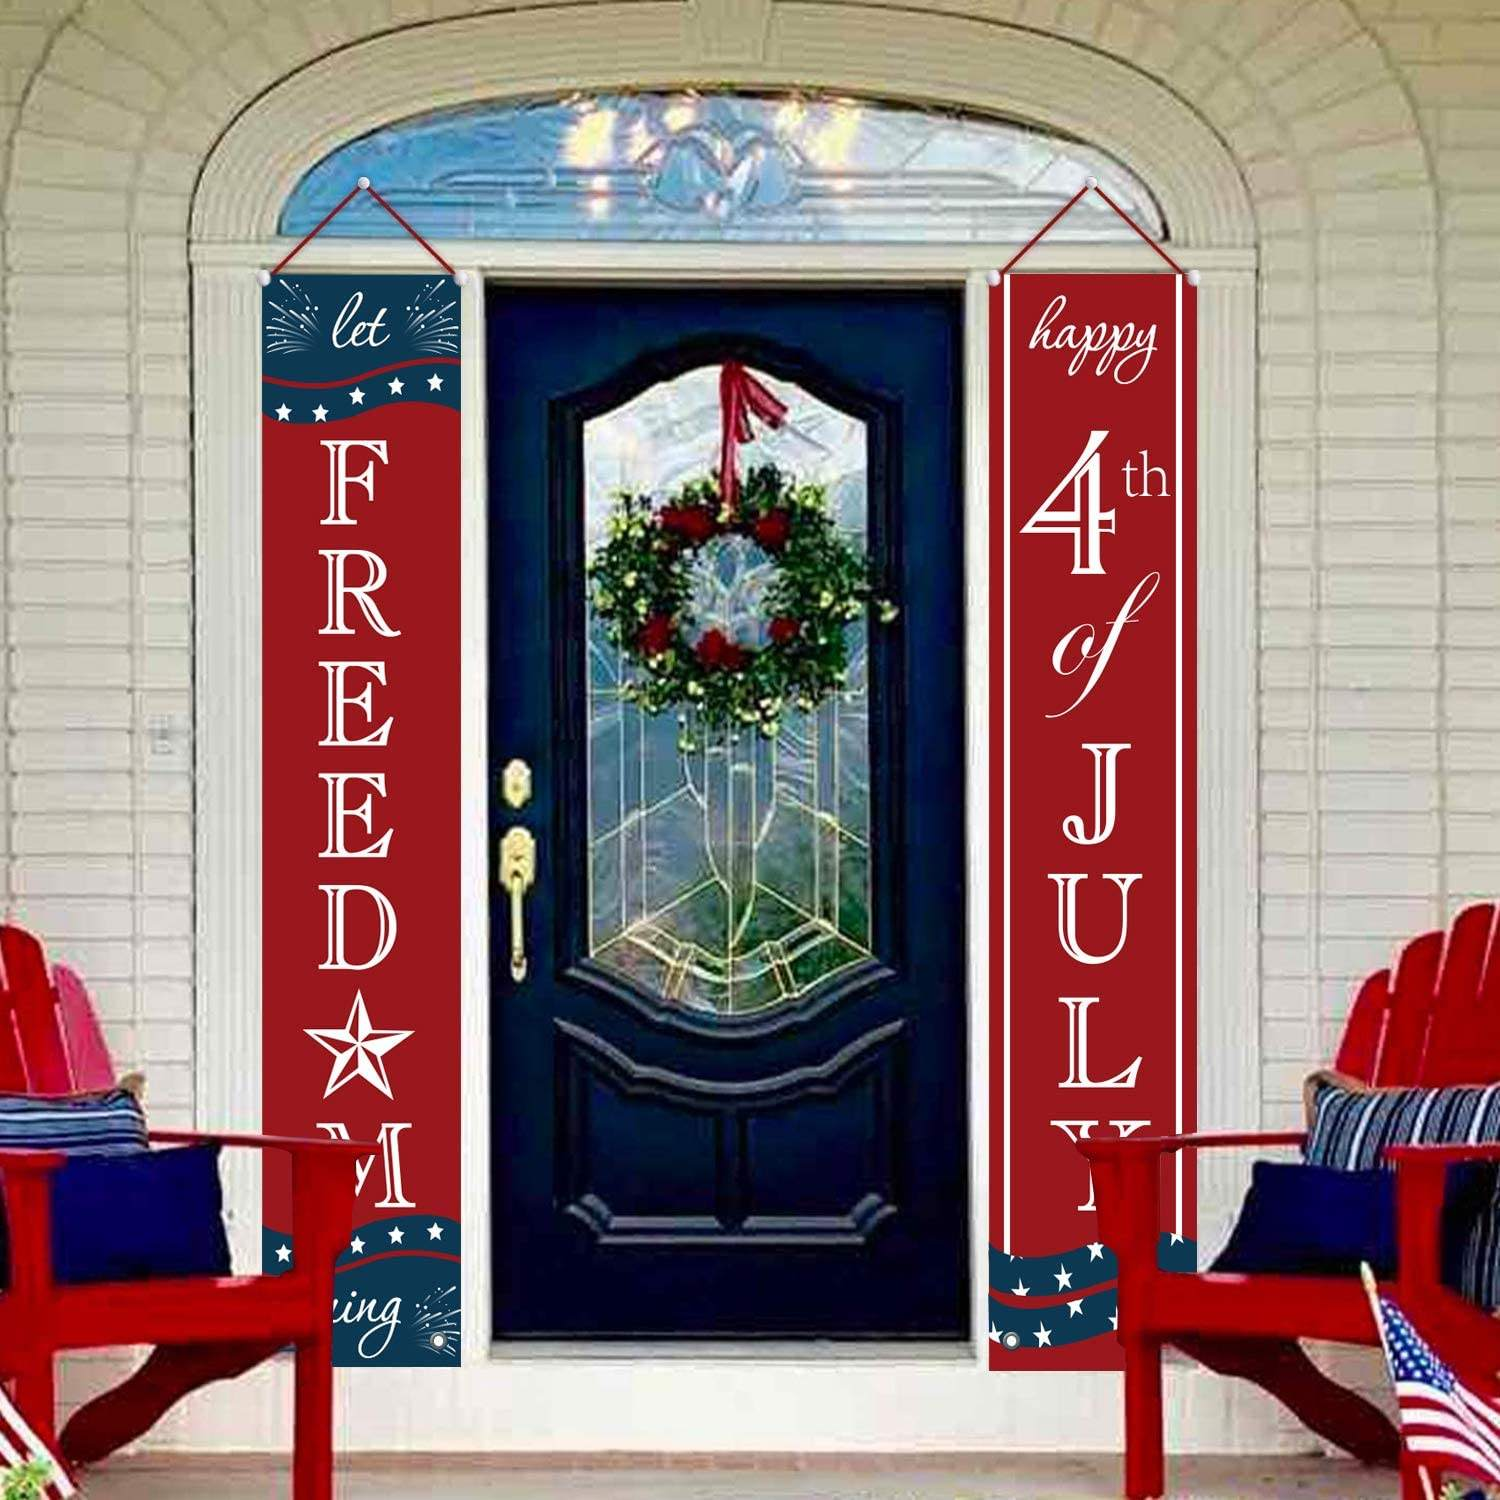 4th of july Welcome and Let Freedom Ring Hanging Flags Bunting Banners Door Porch Sign